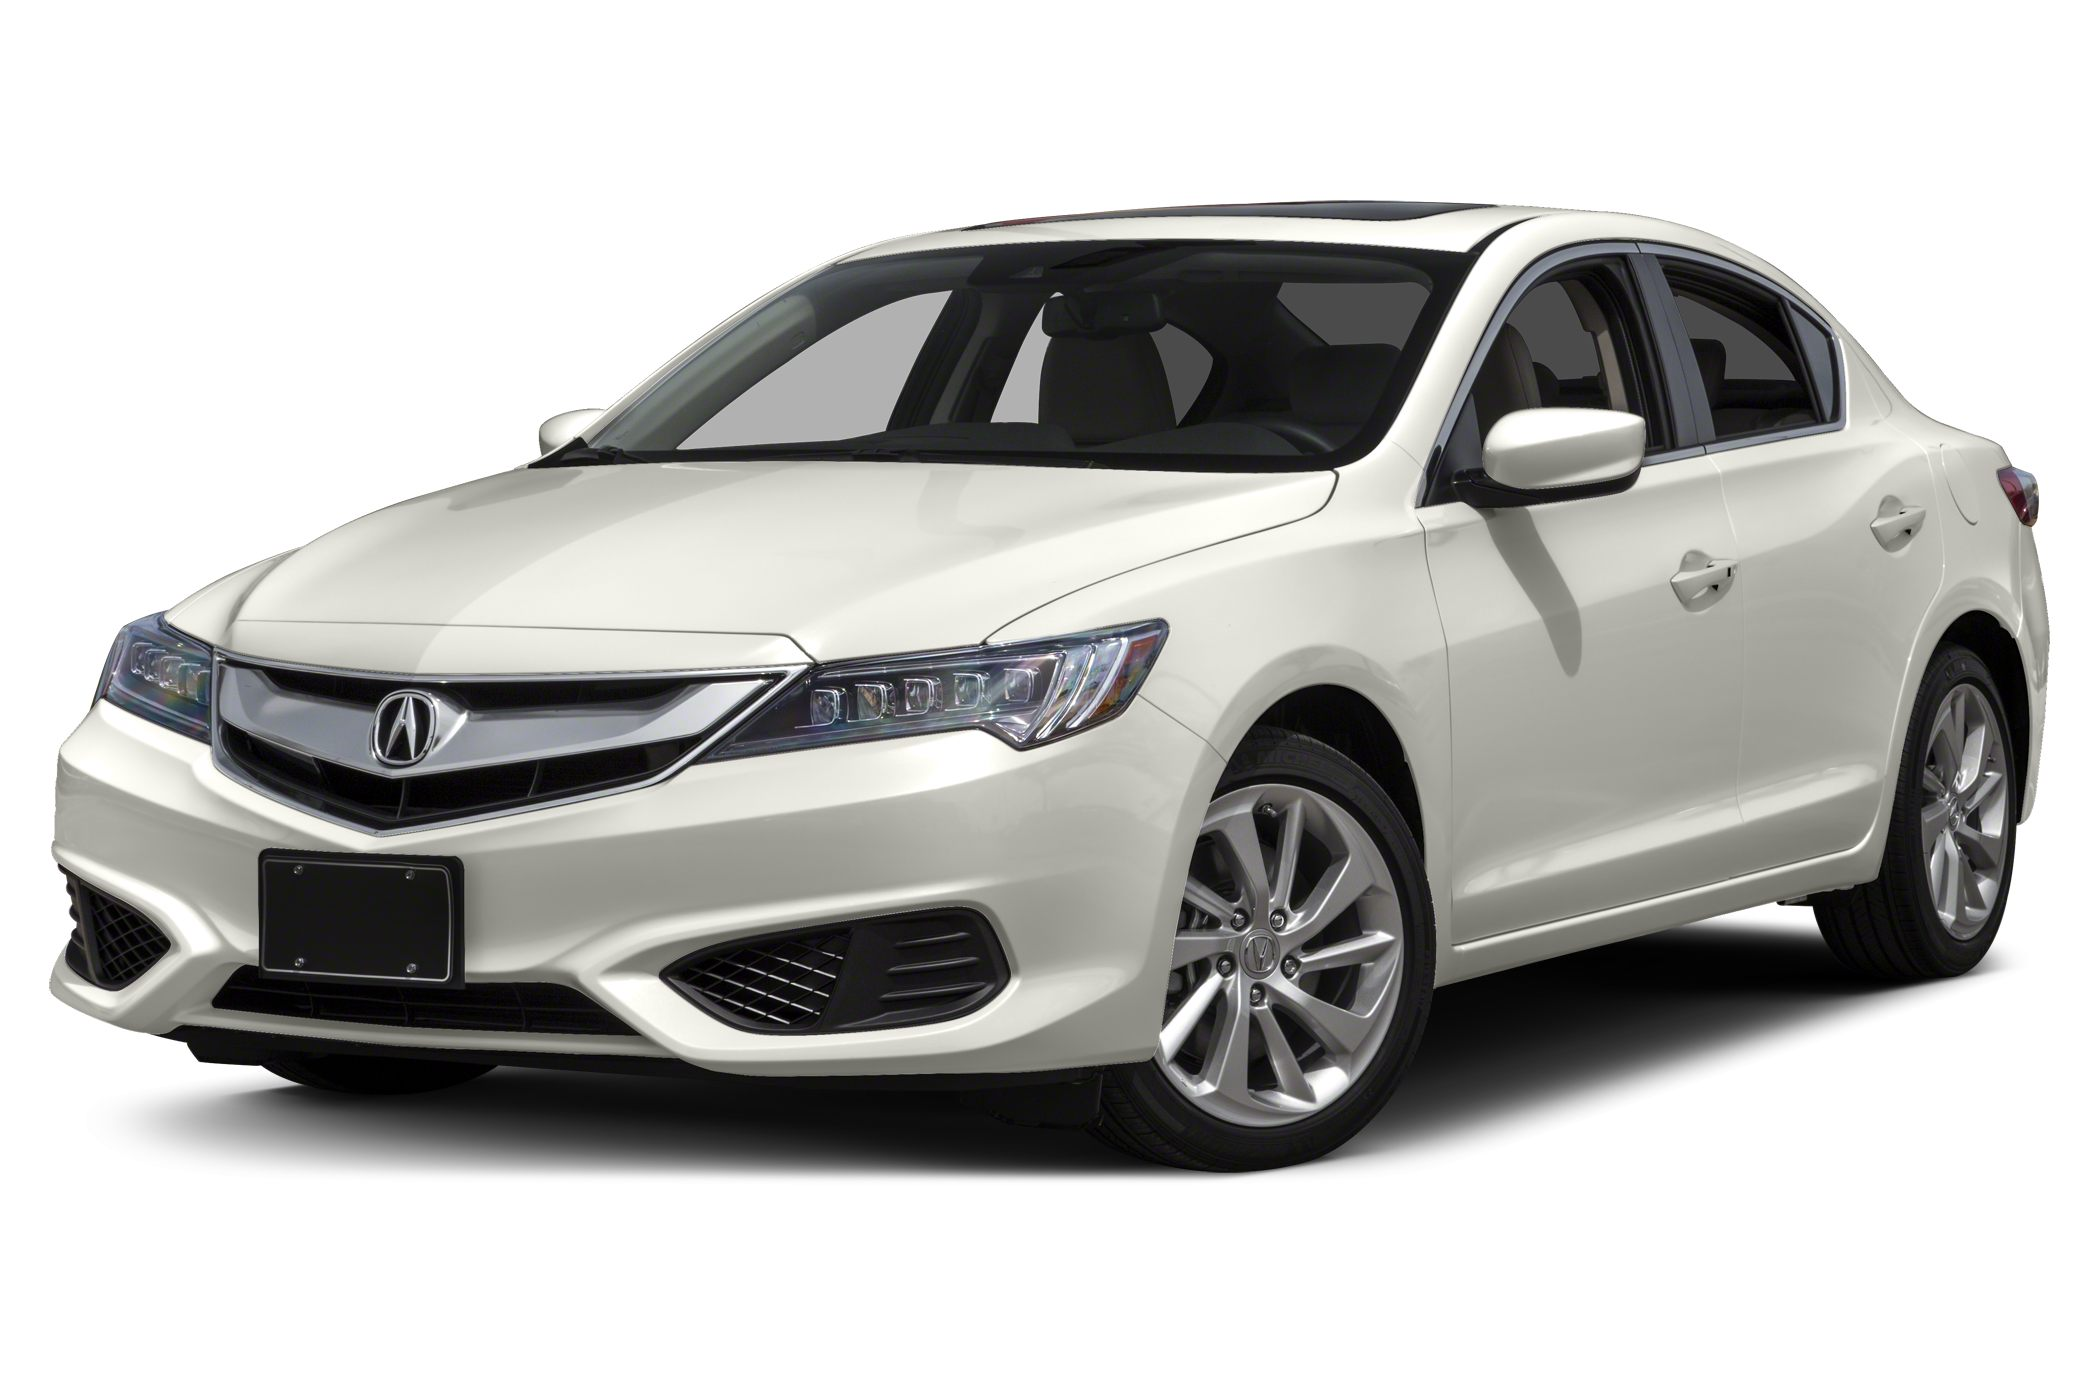 2016 Acura ILX 24 Technology Plus Miles 3Color Graphite Luster Metallic Stock A020839 VIN 1